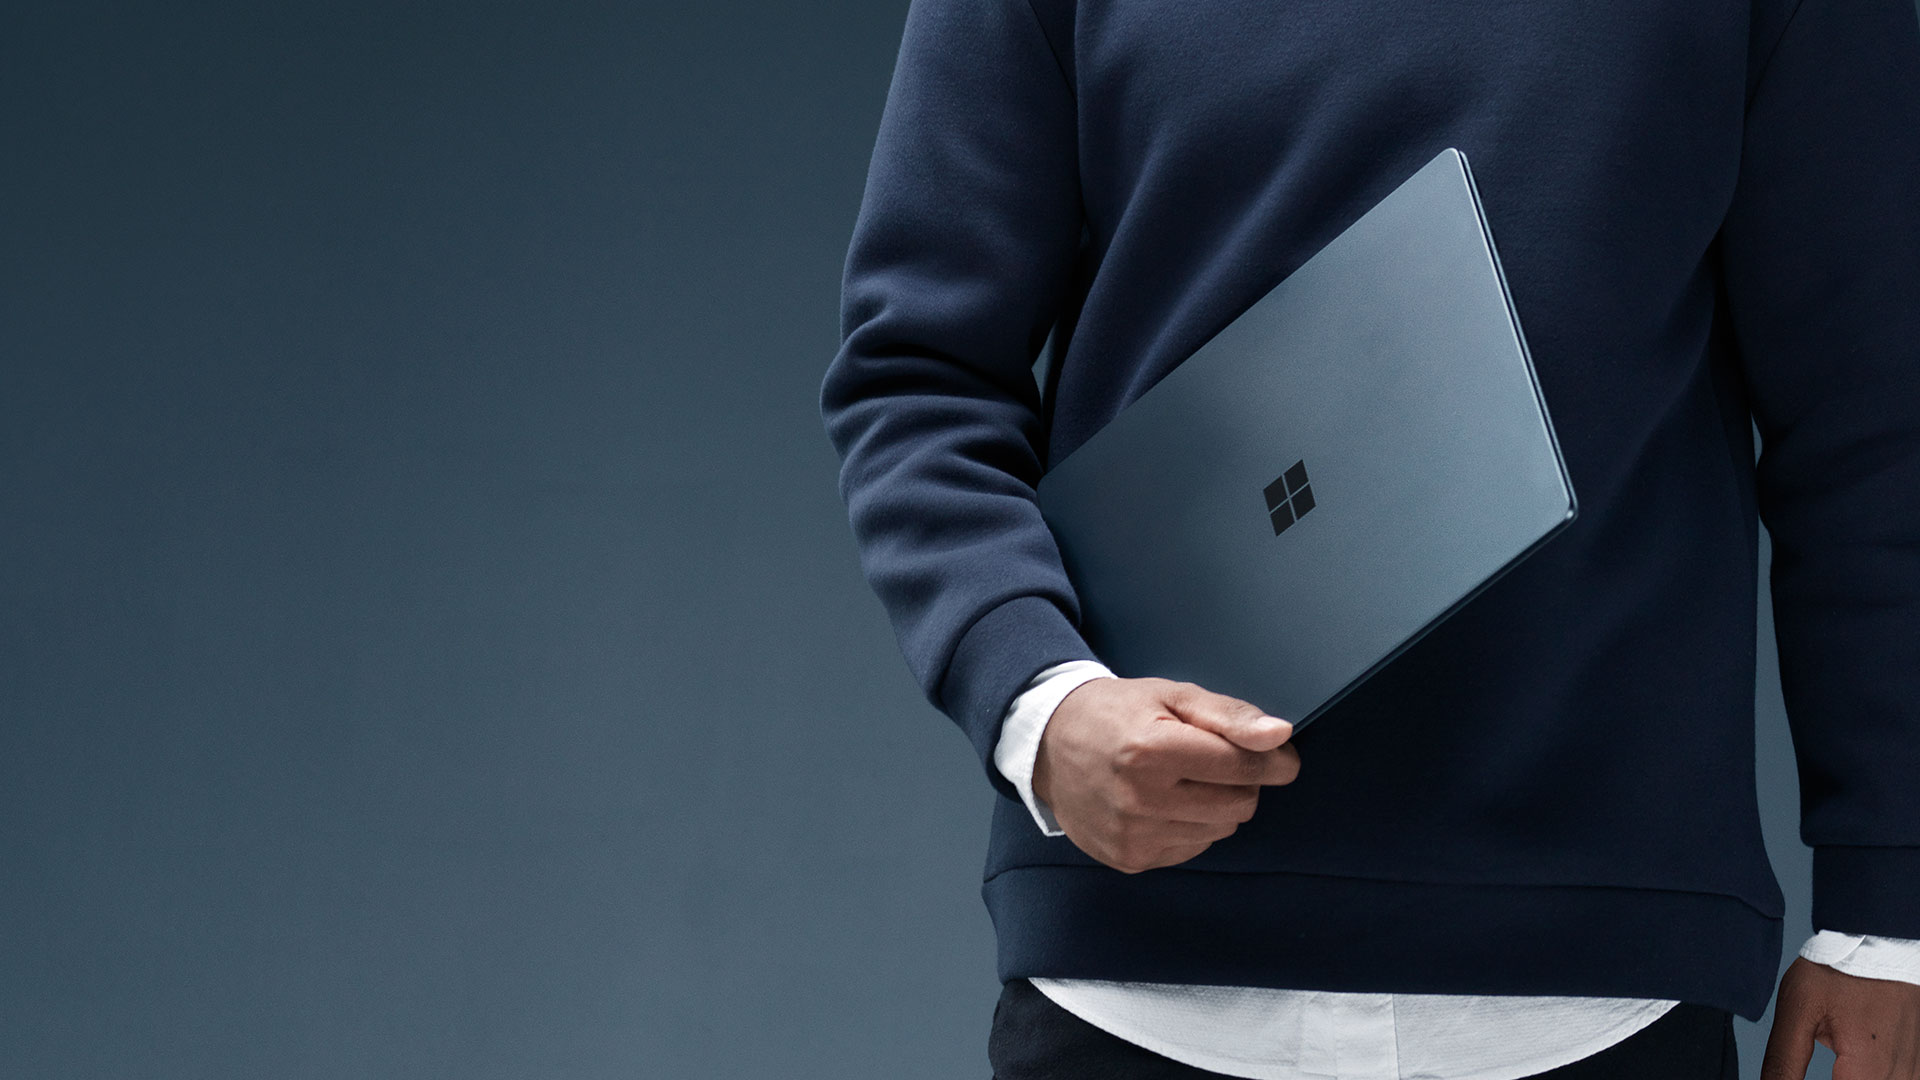 Man som håller en koboltblå Surface Laptop